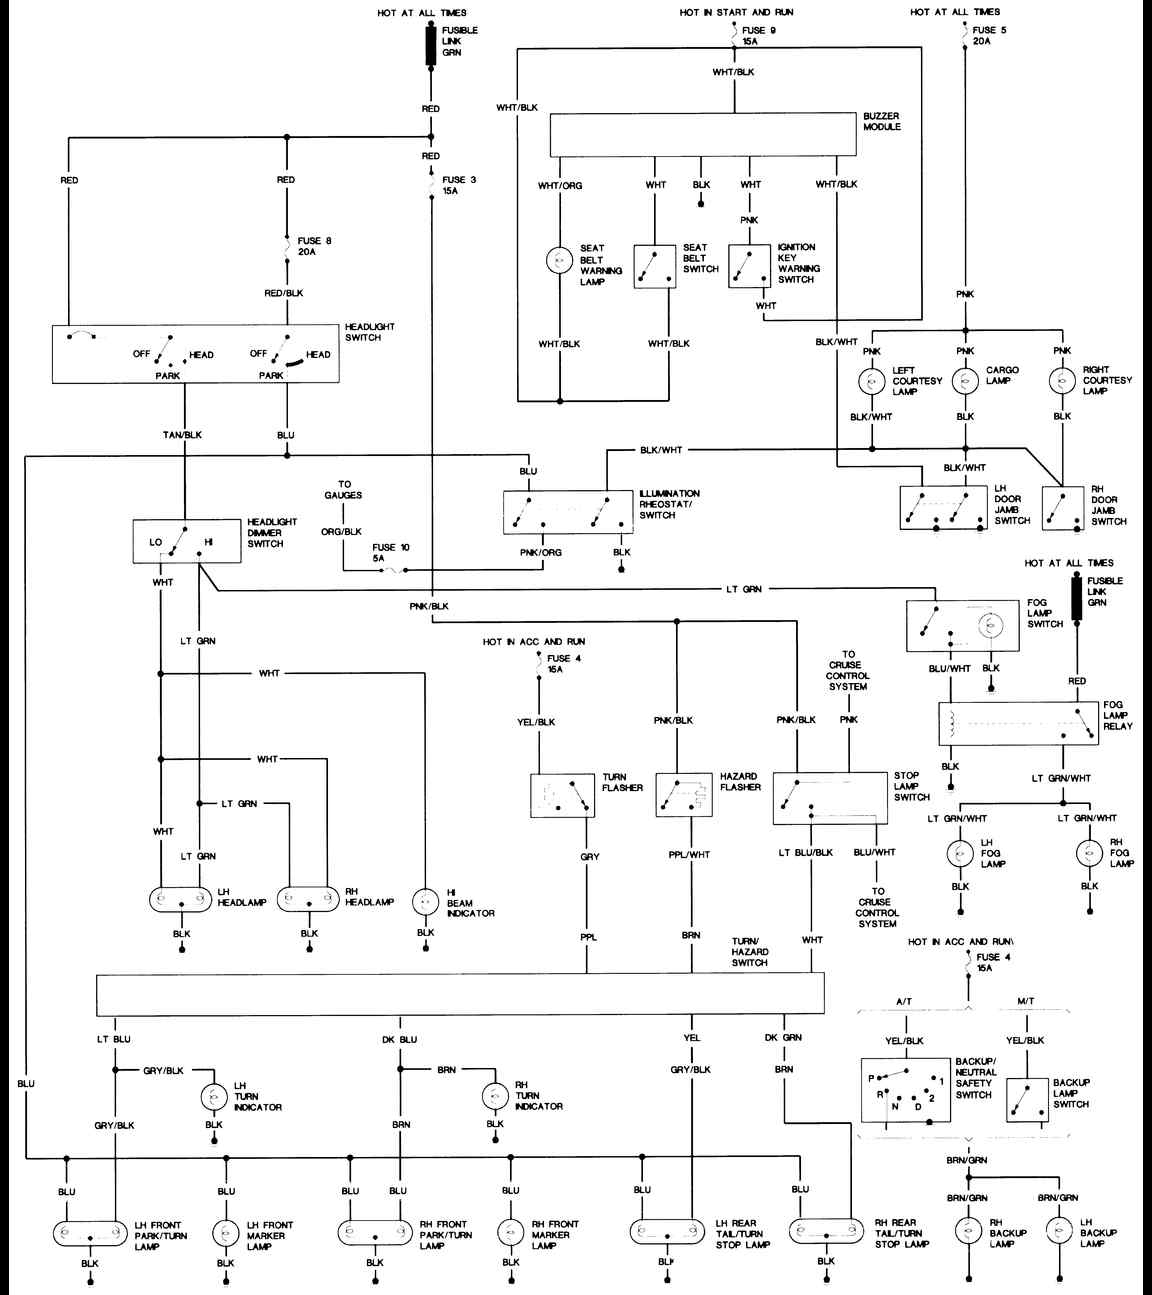 1983 jeep wrangler wiring diagram 1988 jeep wiring diagrams index - freeautomechanic 96 jeep wrangler wiring diagram